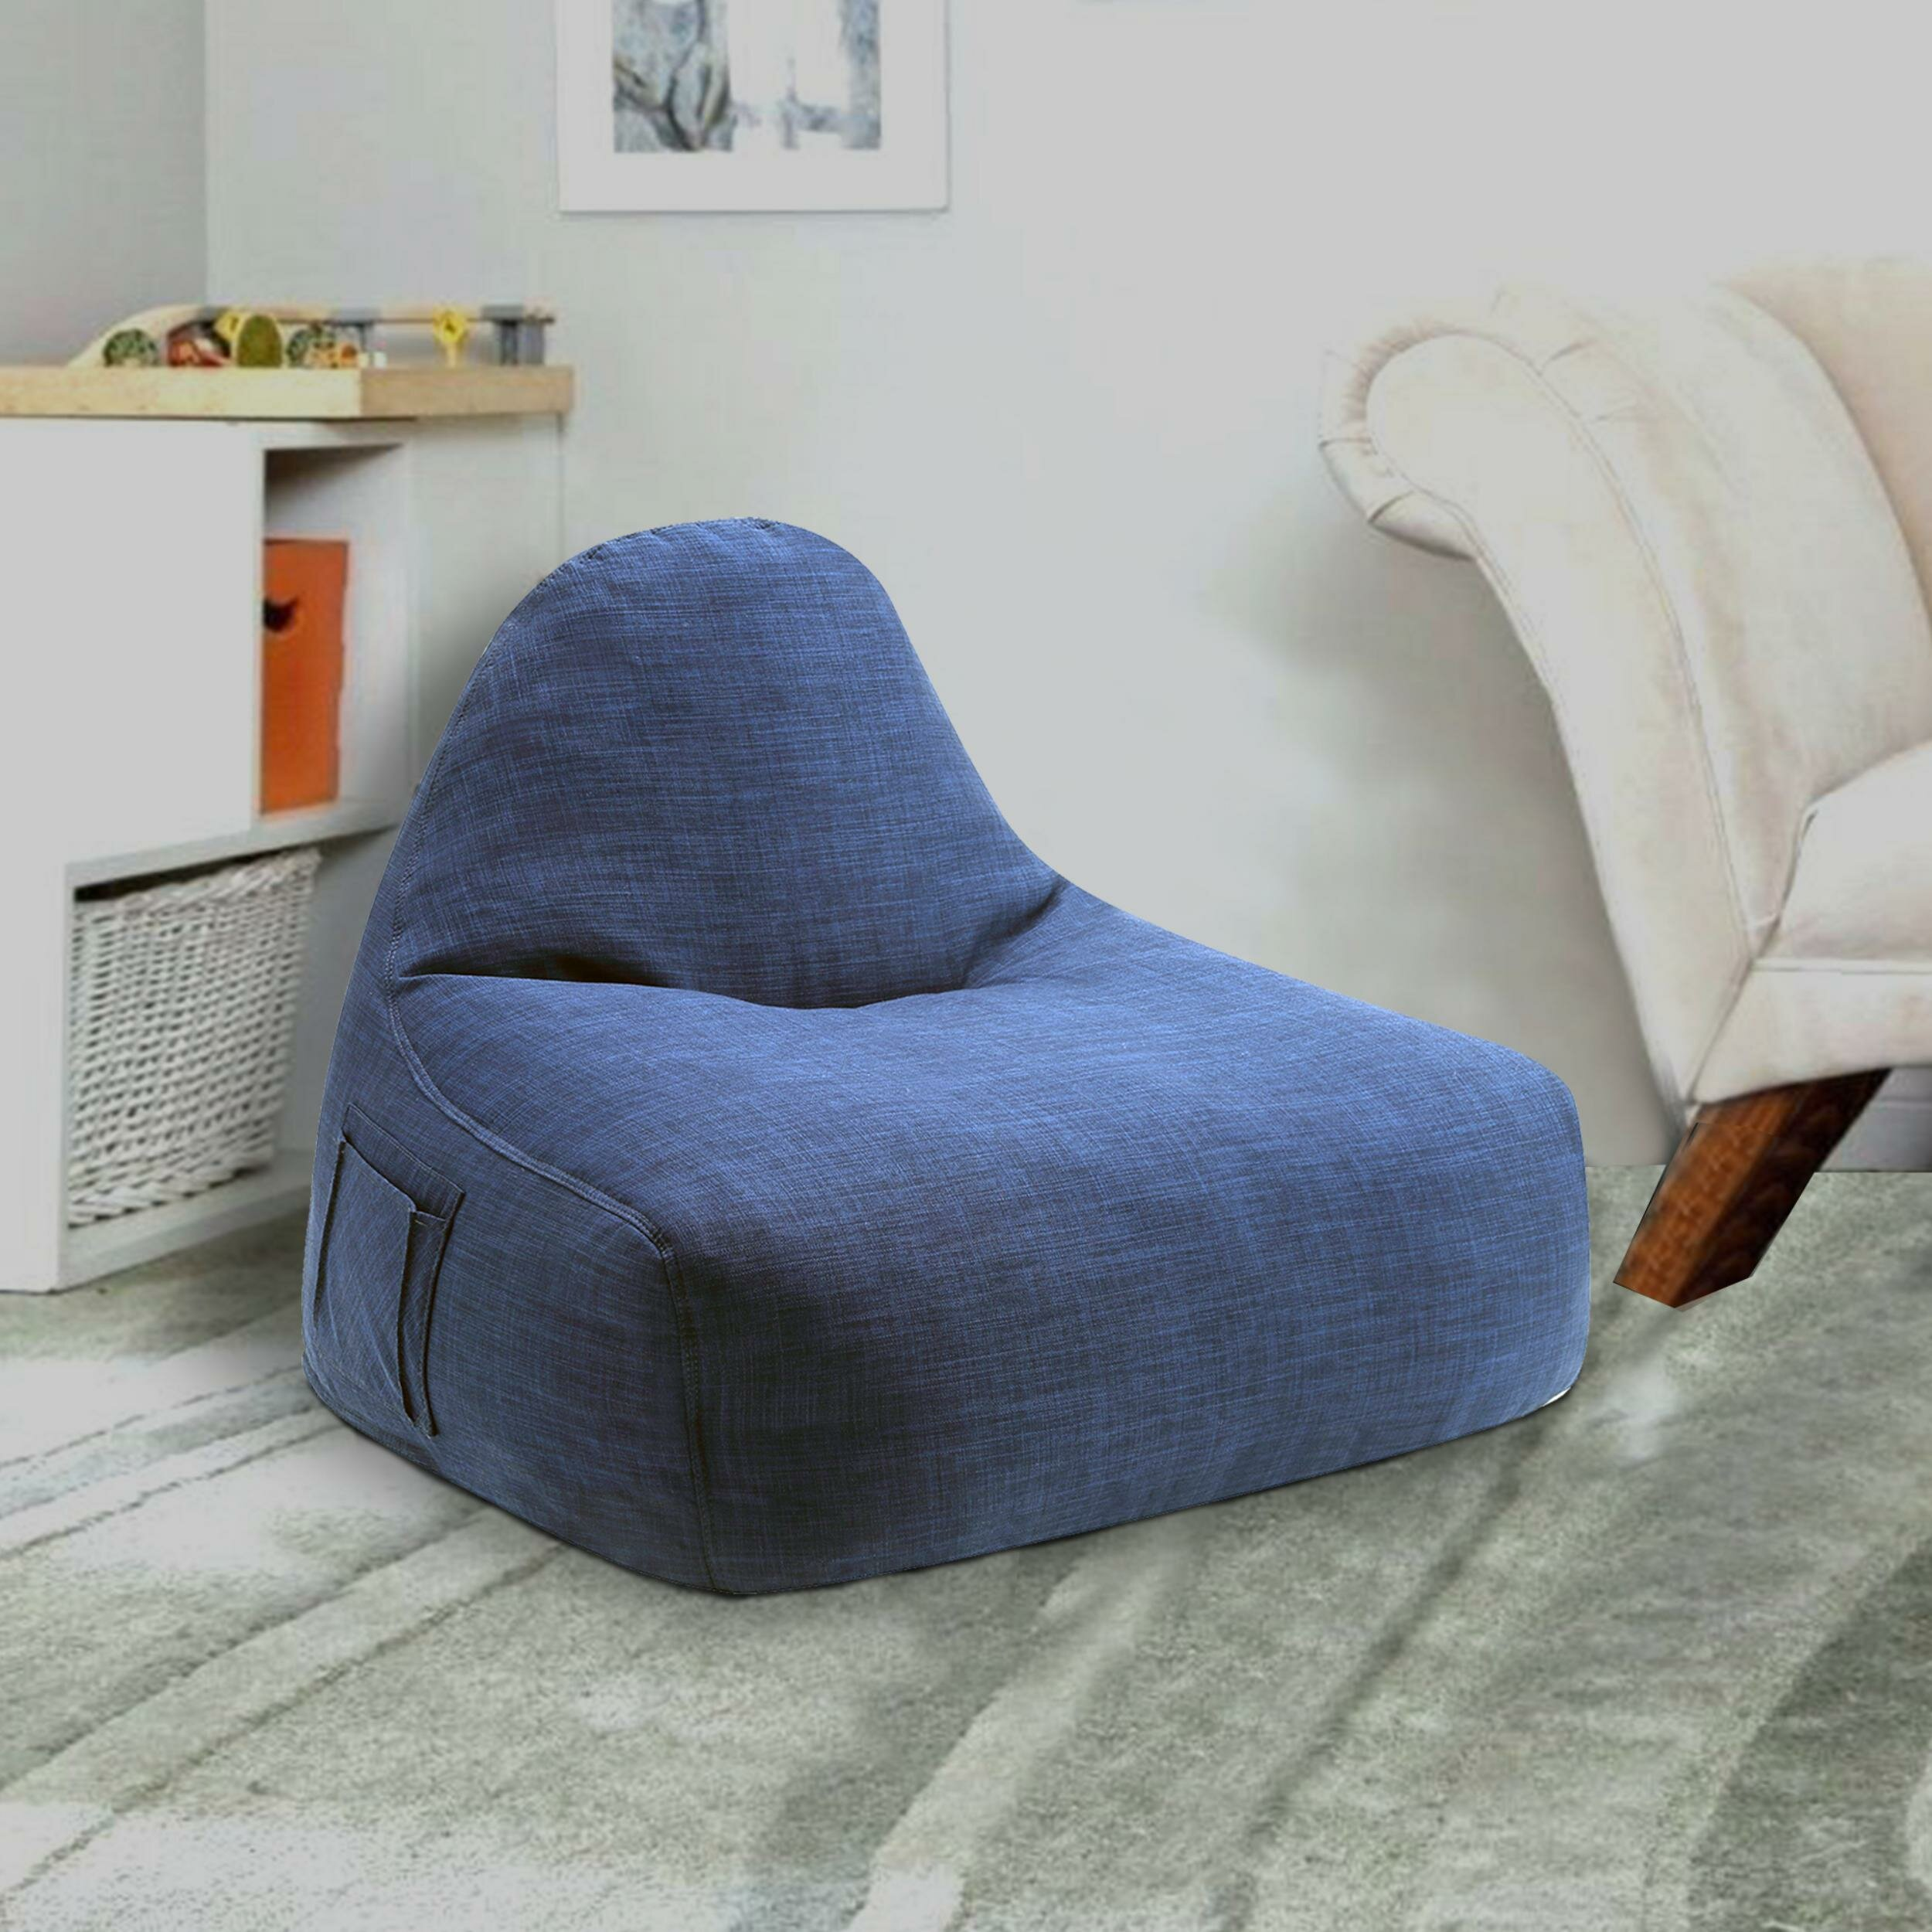 Stupendous Fabric And Foam Contemporary Large Bean Bag Chair Ibusinesslaw Wood Chair Design Ideas Ibusinesslaworg